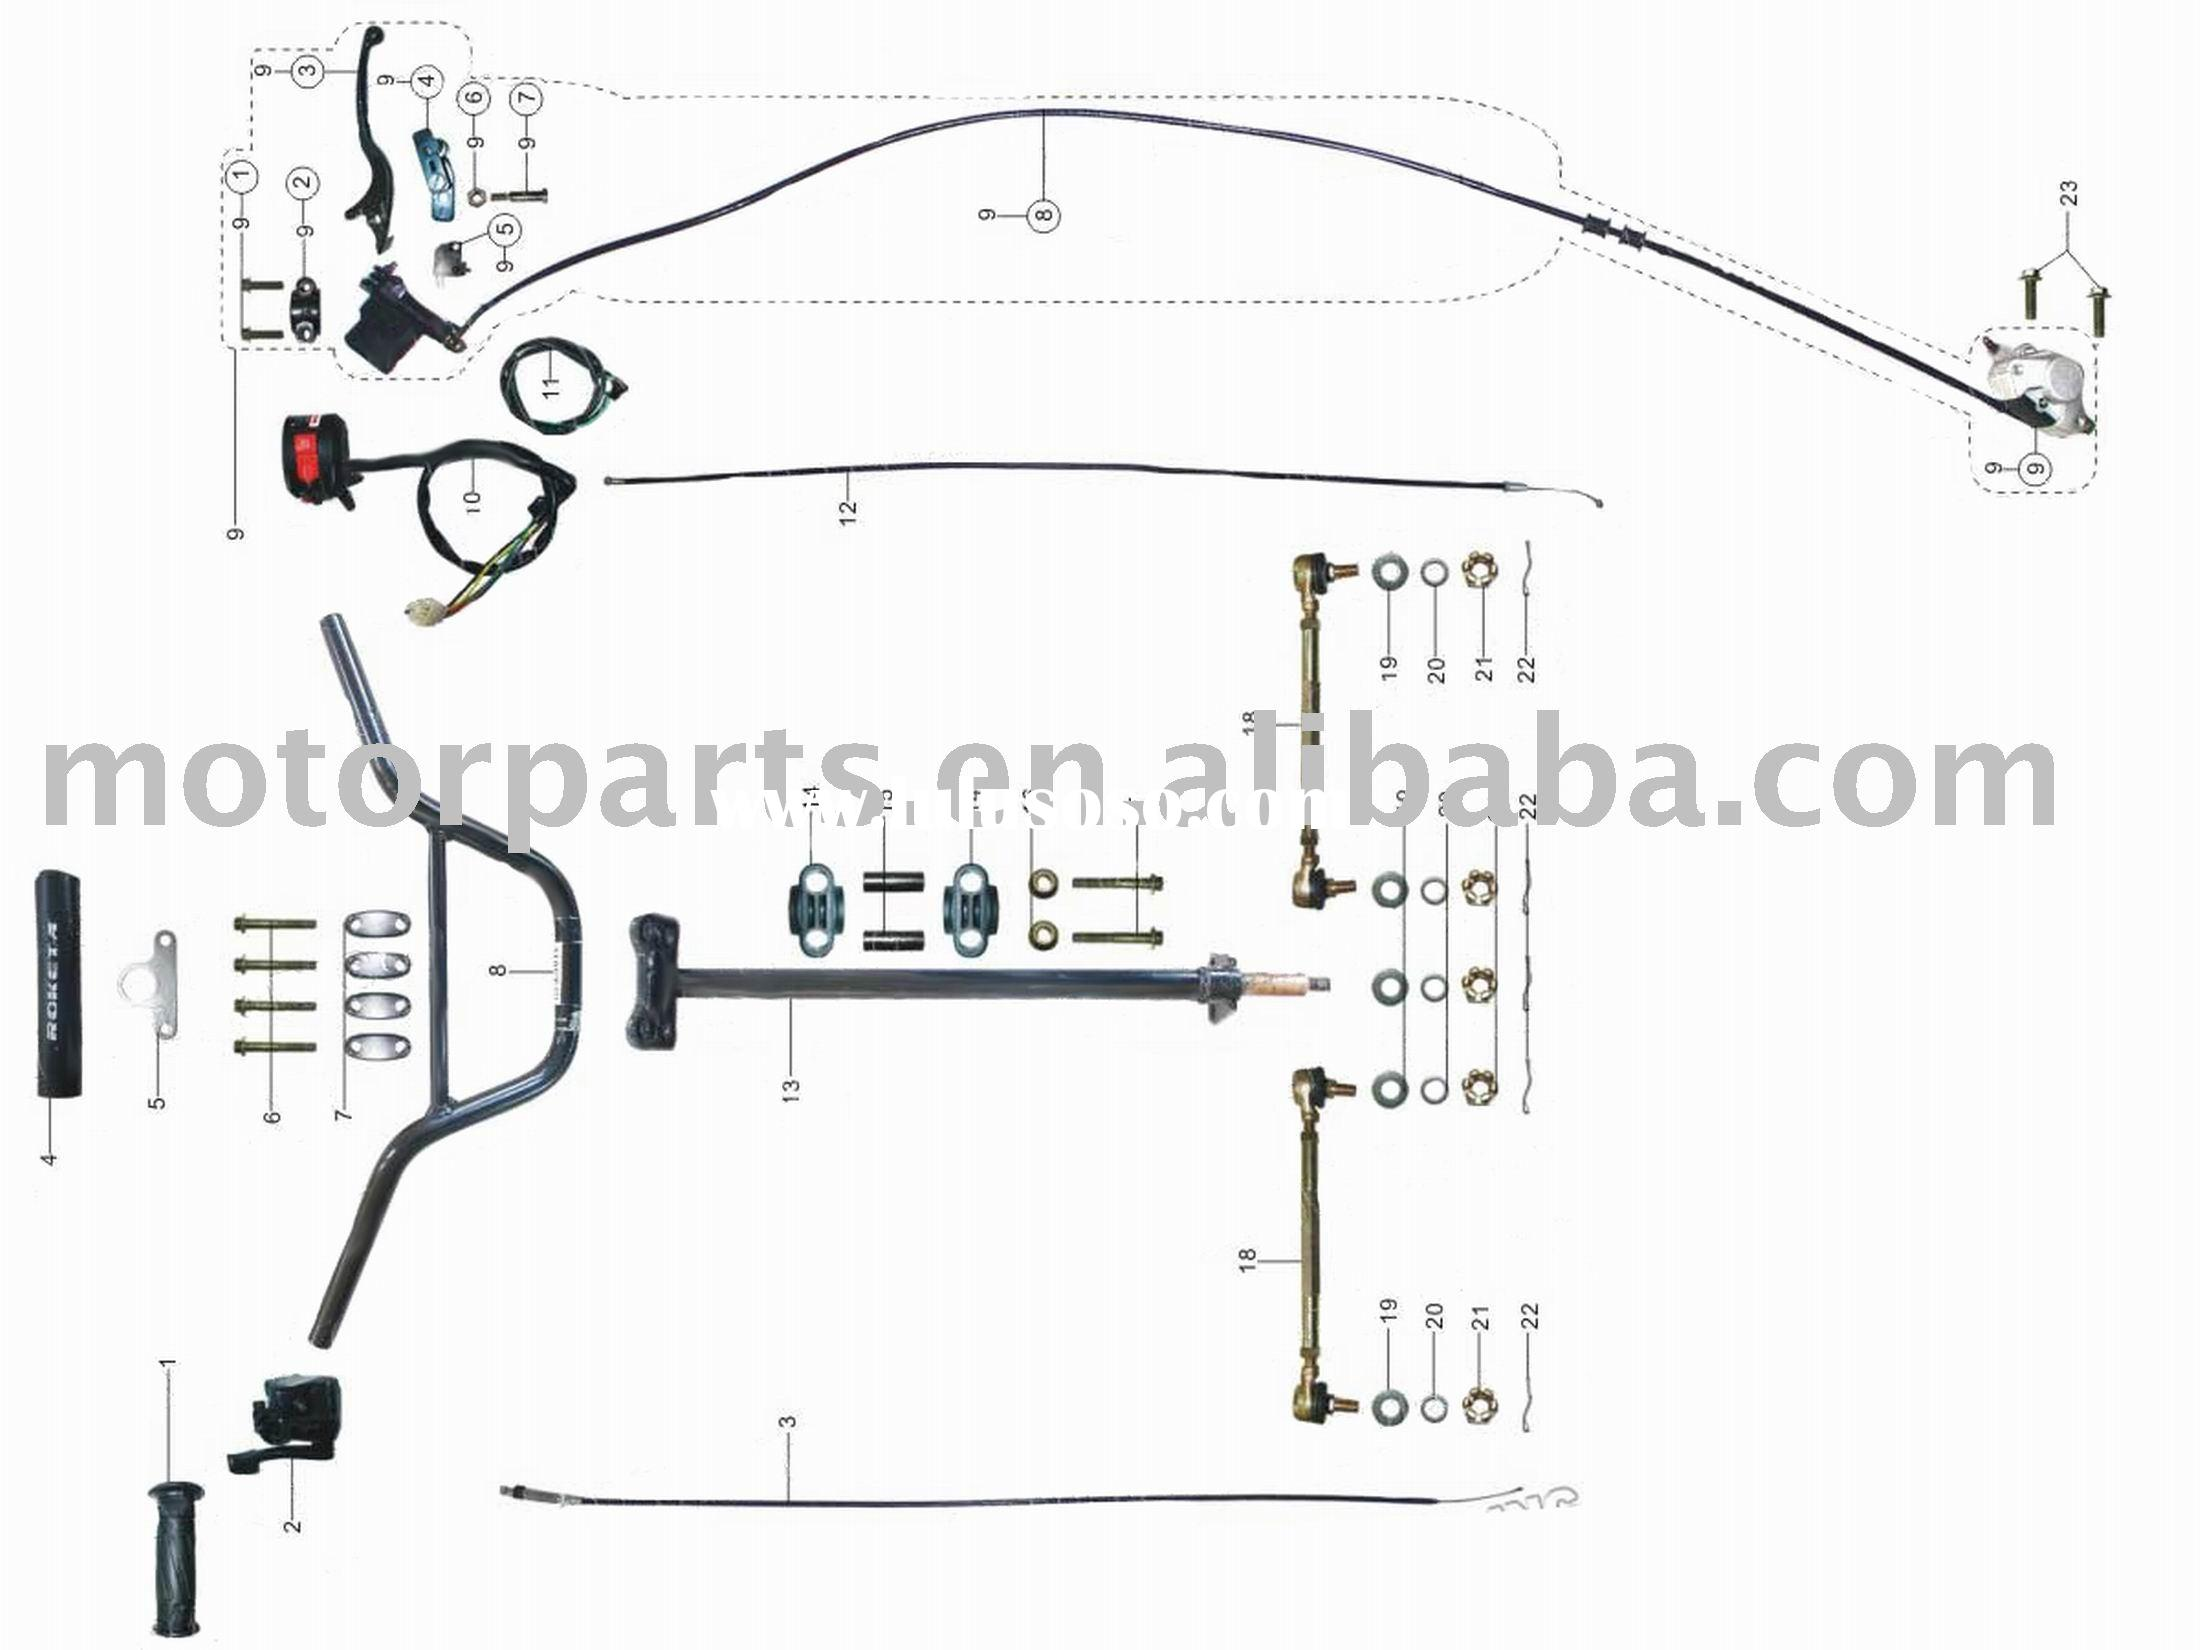 50cc atv wiring diagram motor